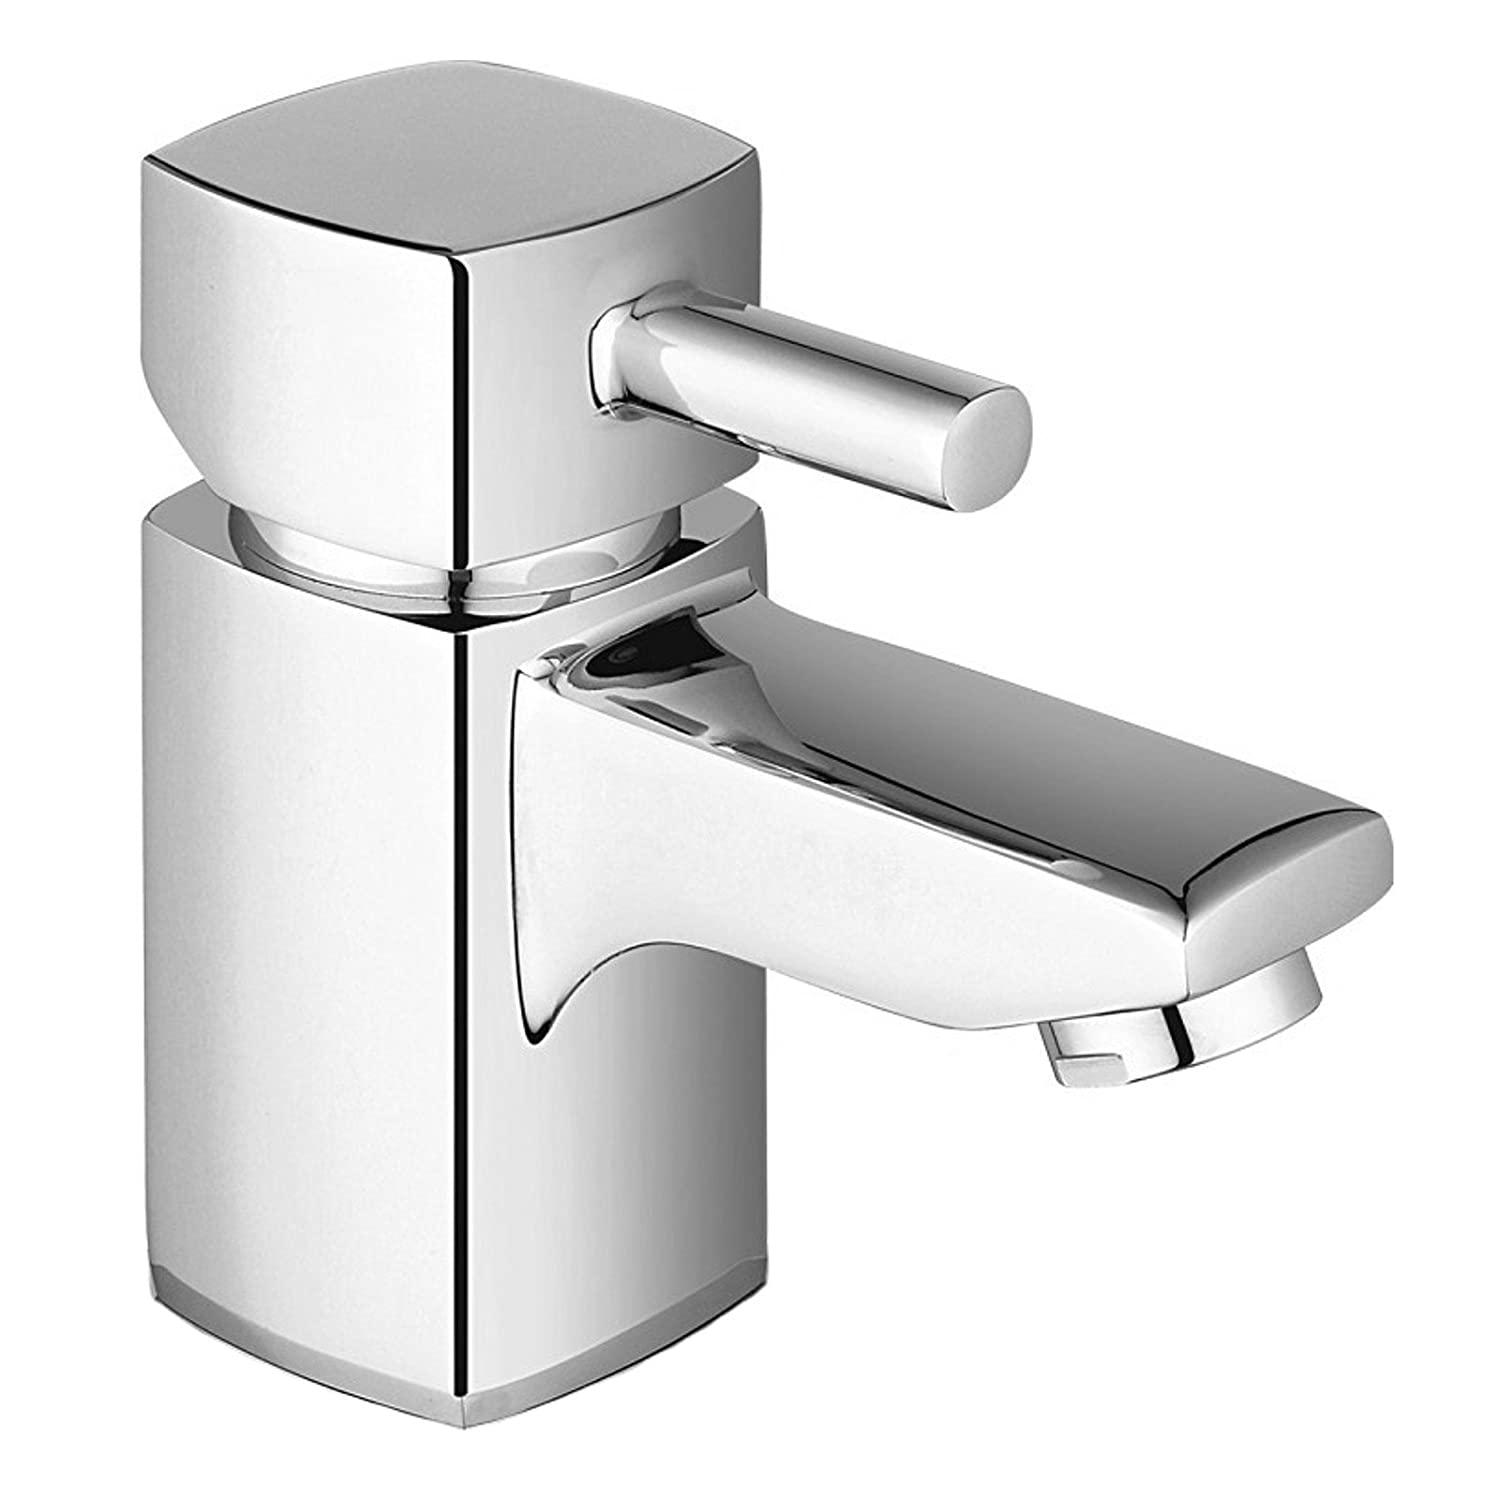 fittings bathroom mixers kitchen taps and faucets fixtures hansa logo vola